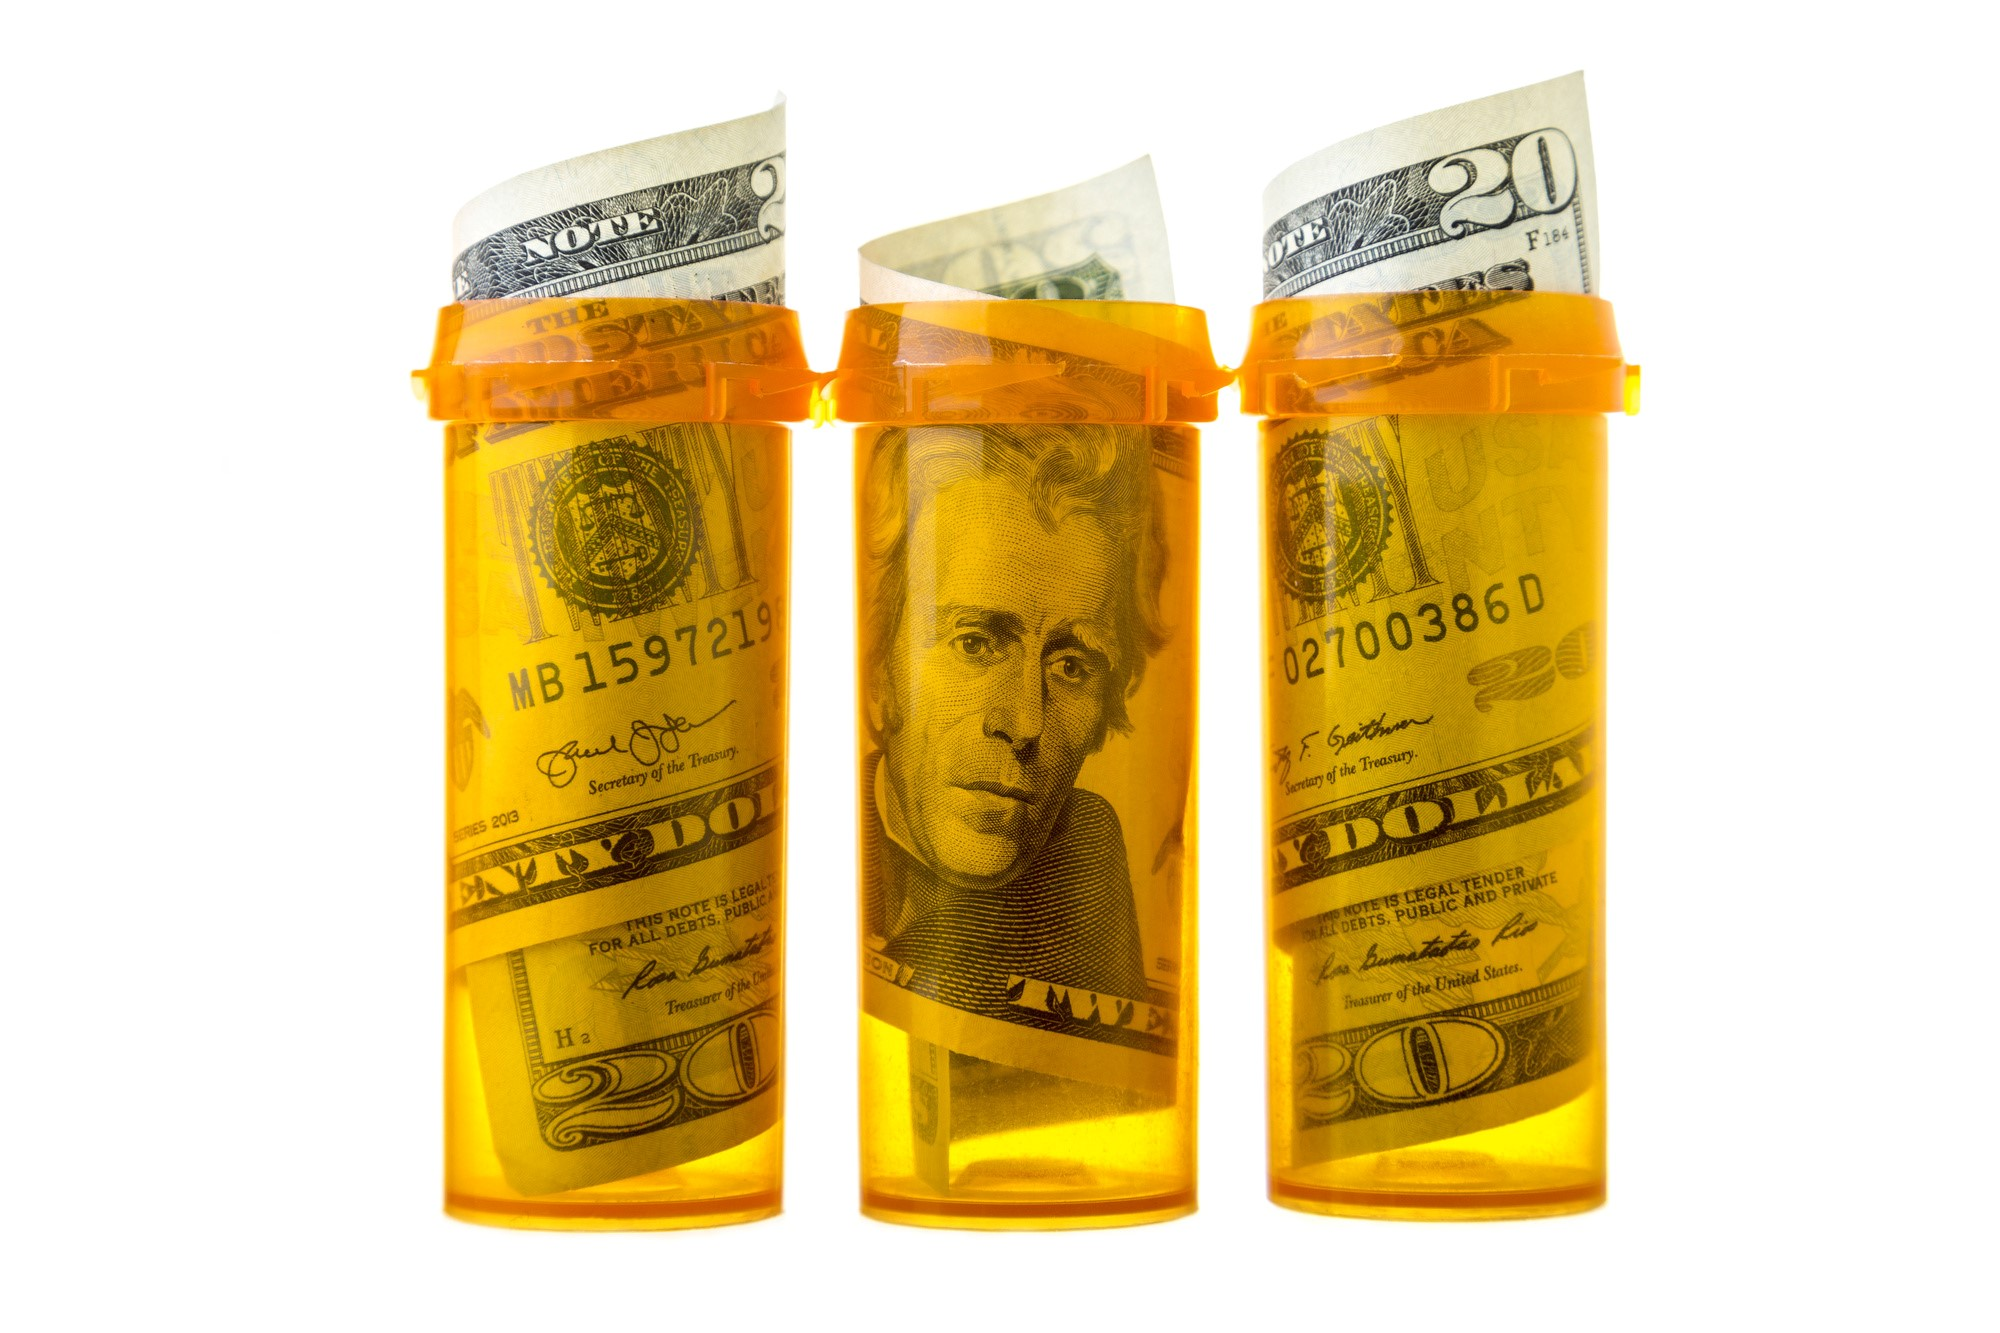 Paying for Meds: How to Get a Prescription Without Insurance